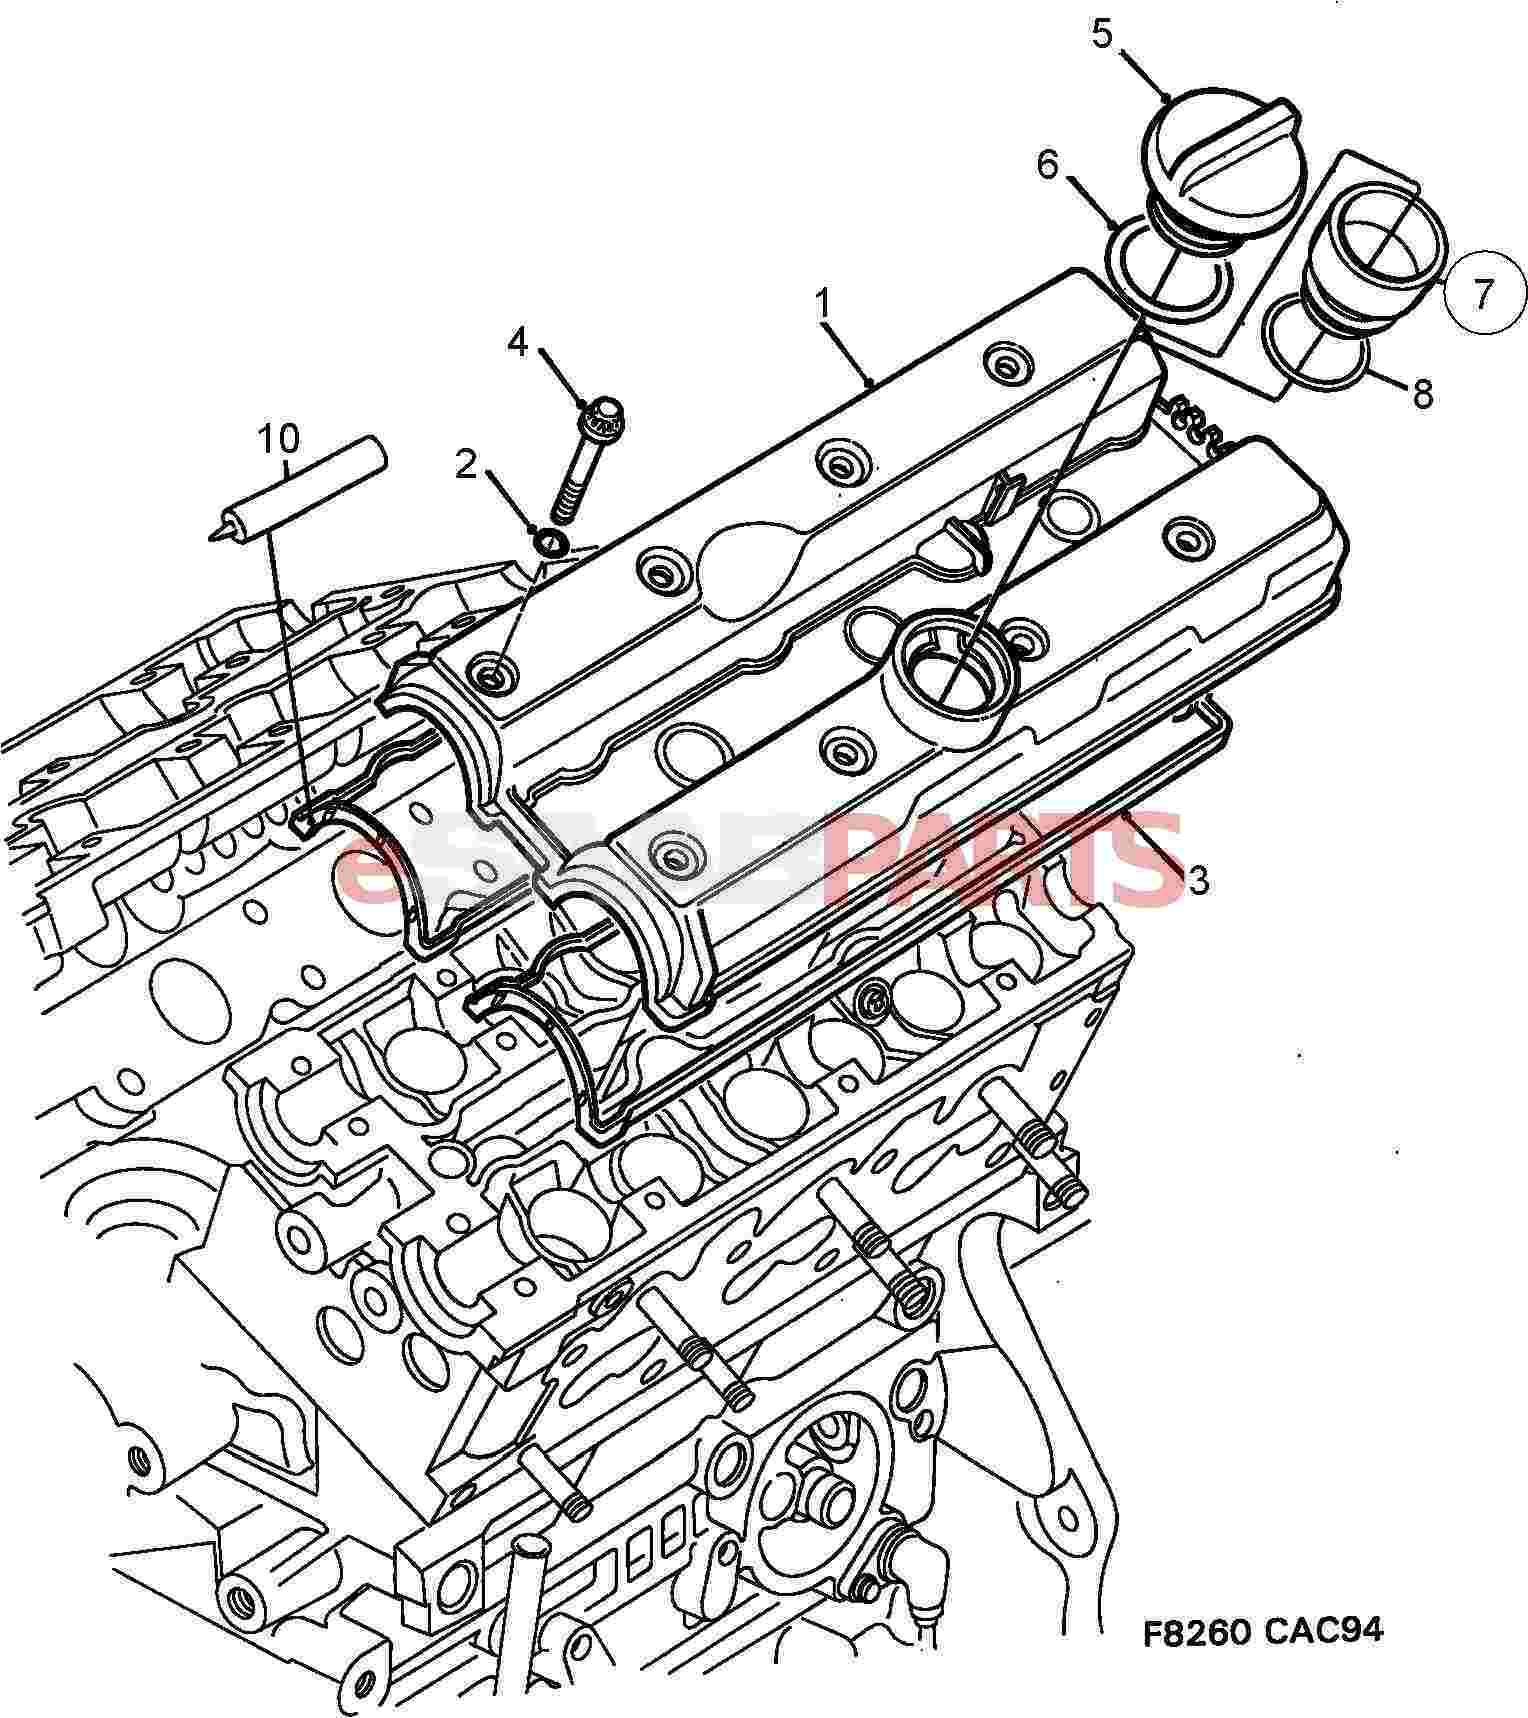 2016 Cadillac Srx Parts Diagram. Cadillac. Auto Wiring Diagram